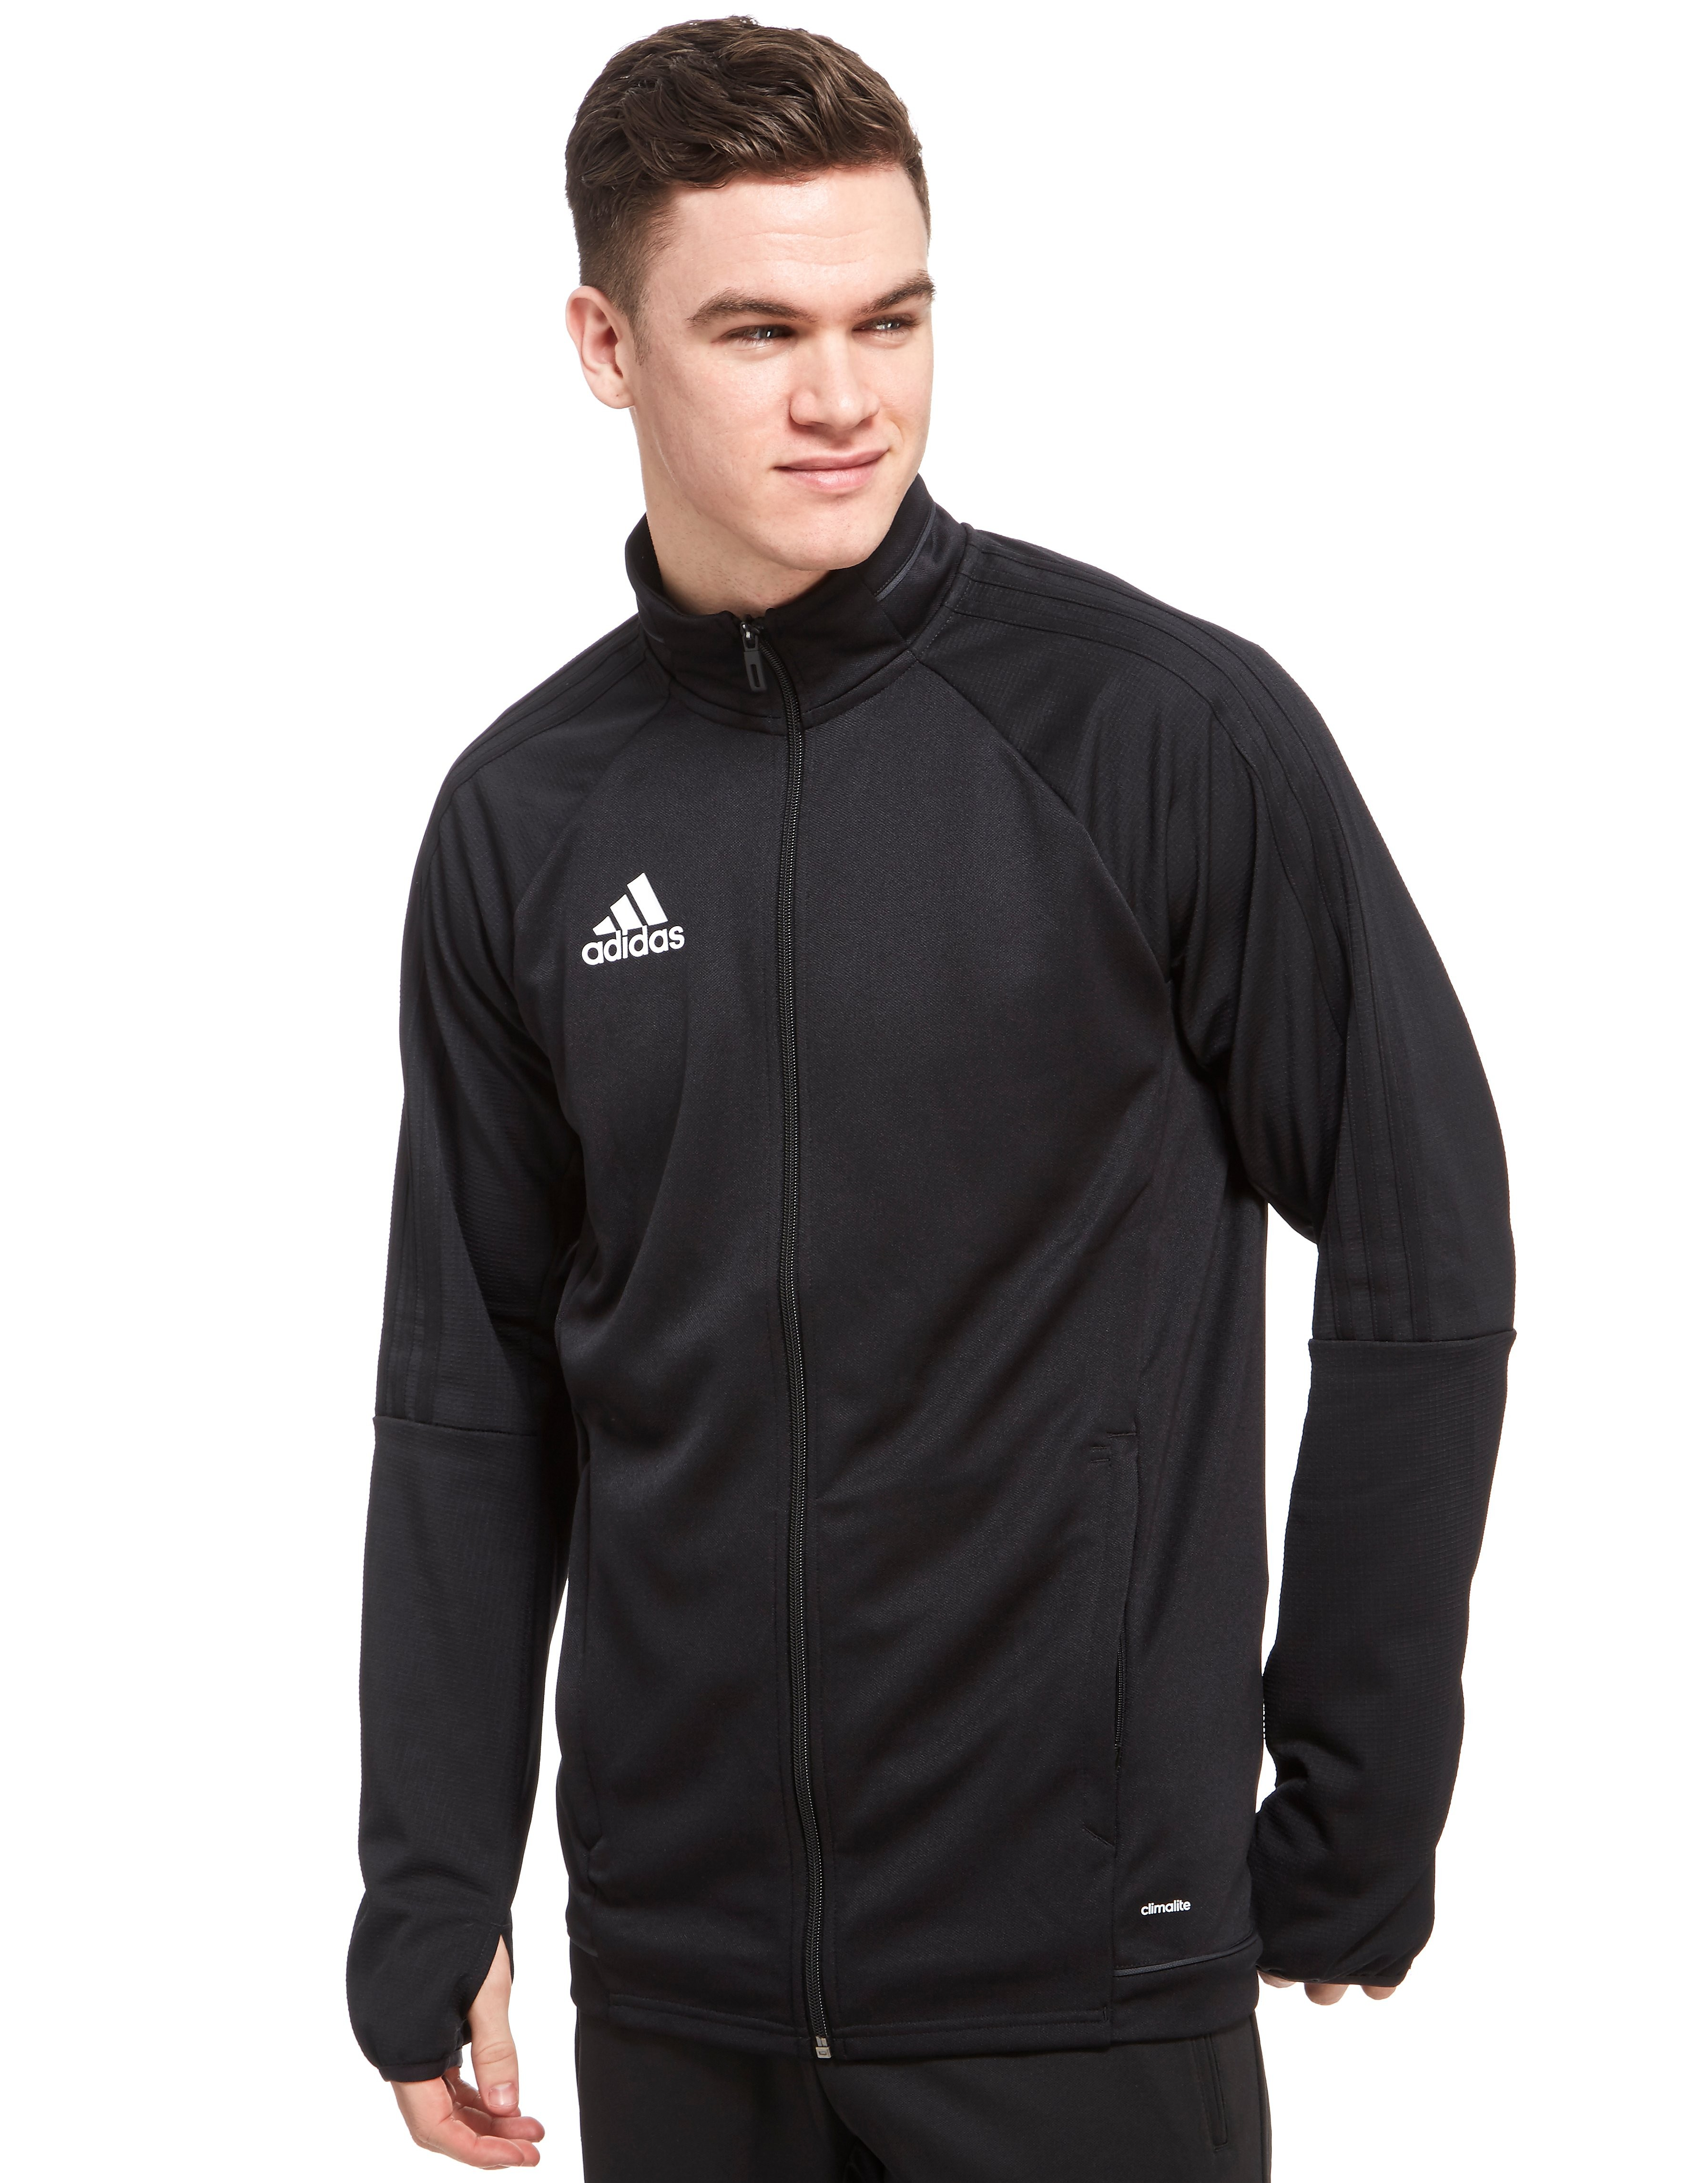 adidas Tiro 17 Woven Training Jacket